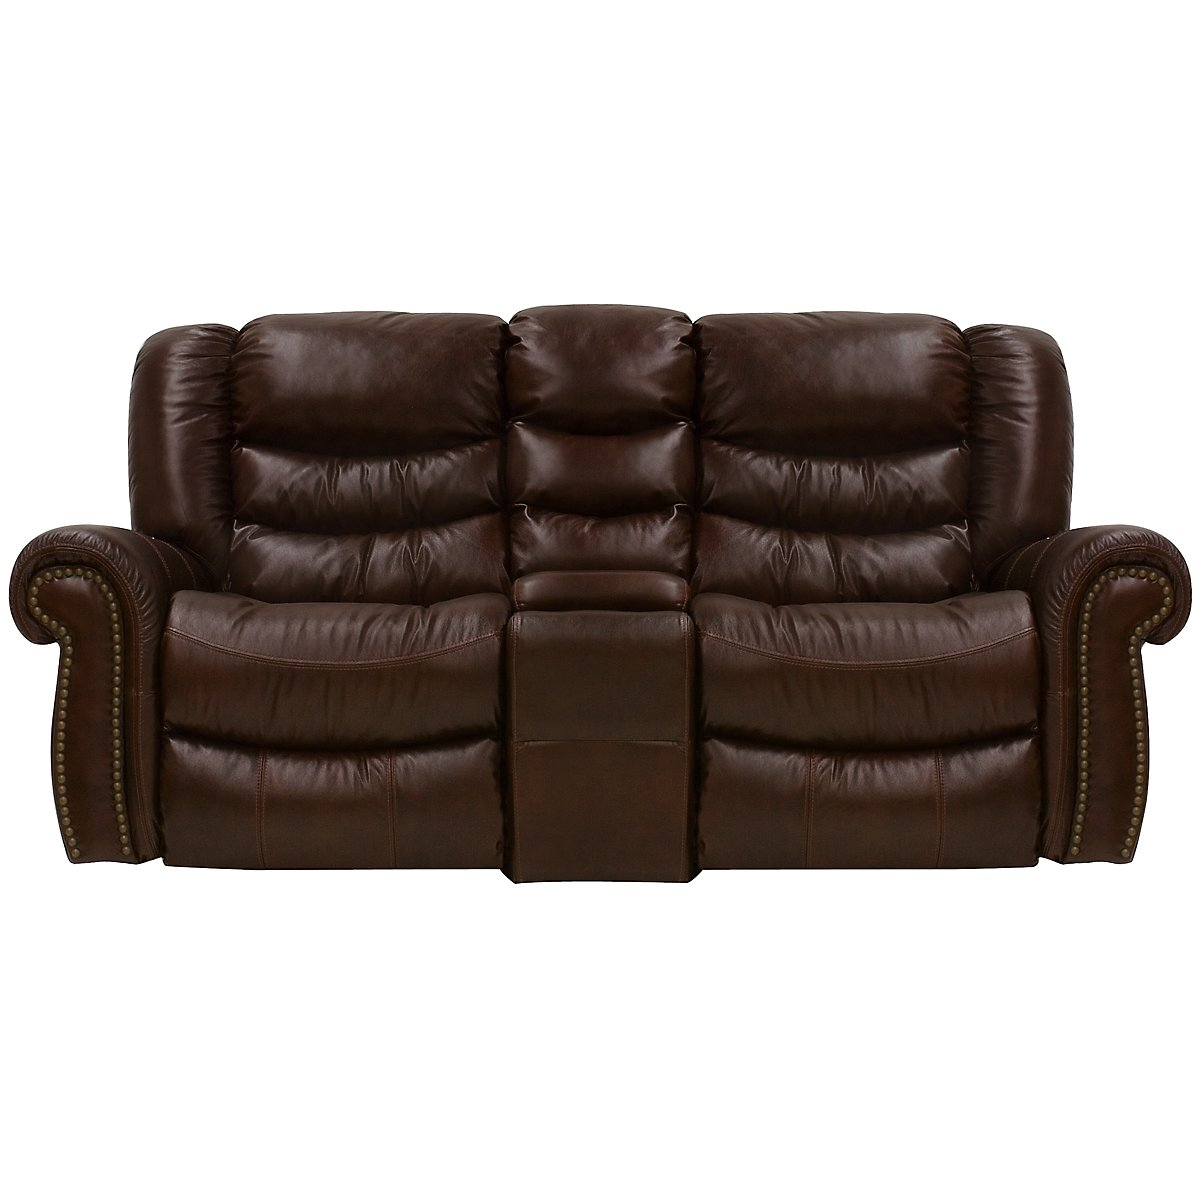 Peyton2 Dk Brown Leather & Vinyl Power Reclining Console Loveseat